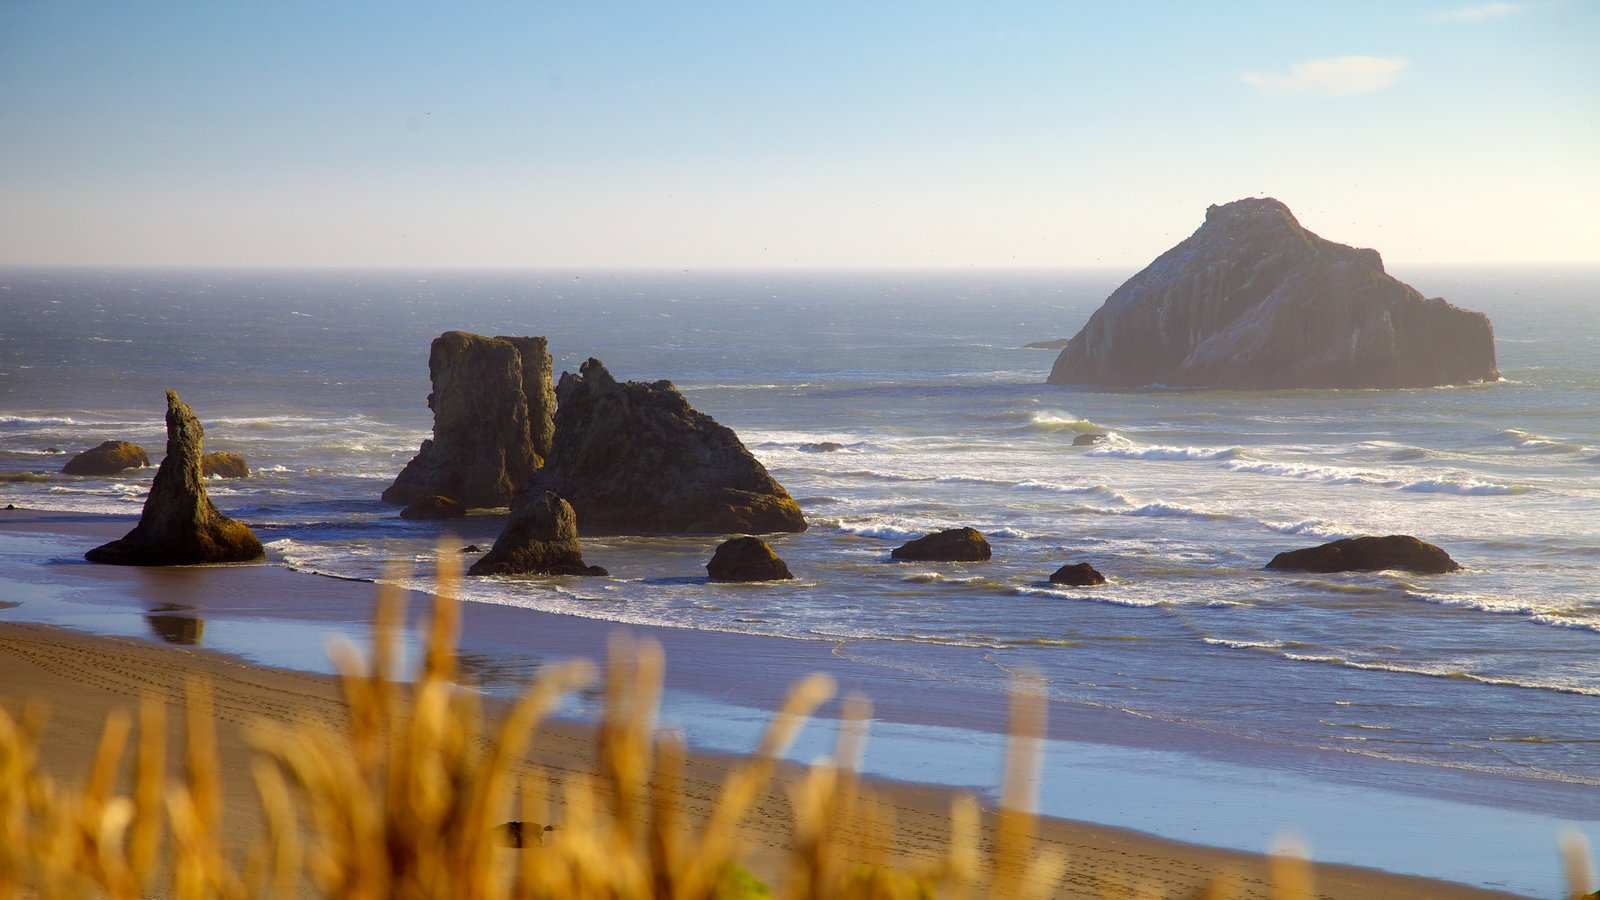 Bandon Beach showing a beach and rugged coastline